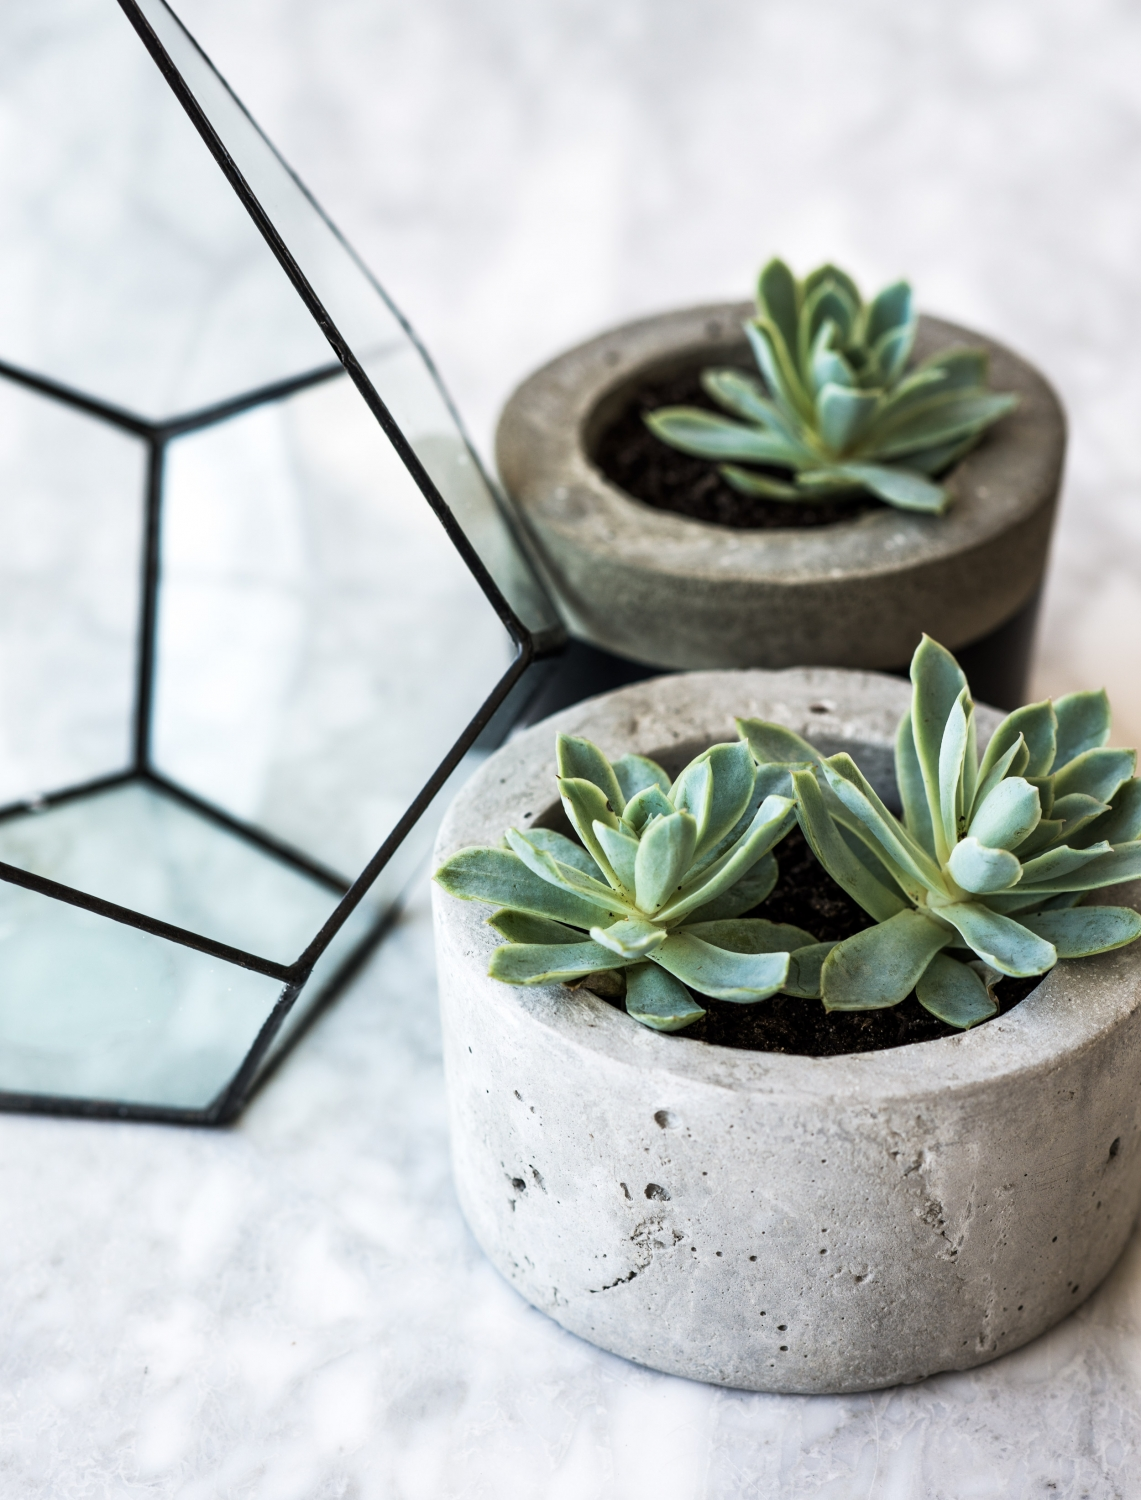 harper-and-harley_Etsy_plants-in-an-office_3